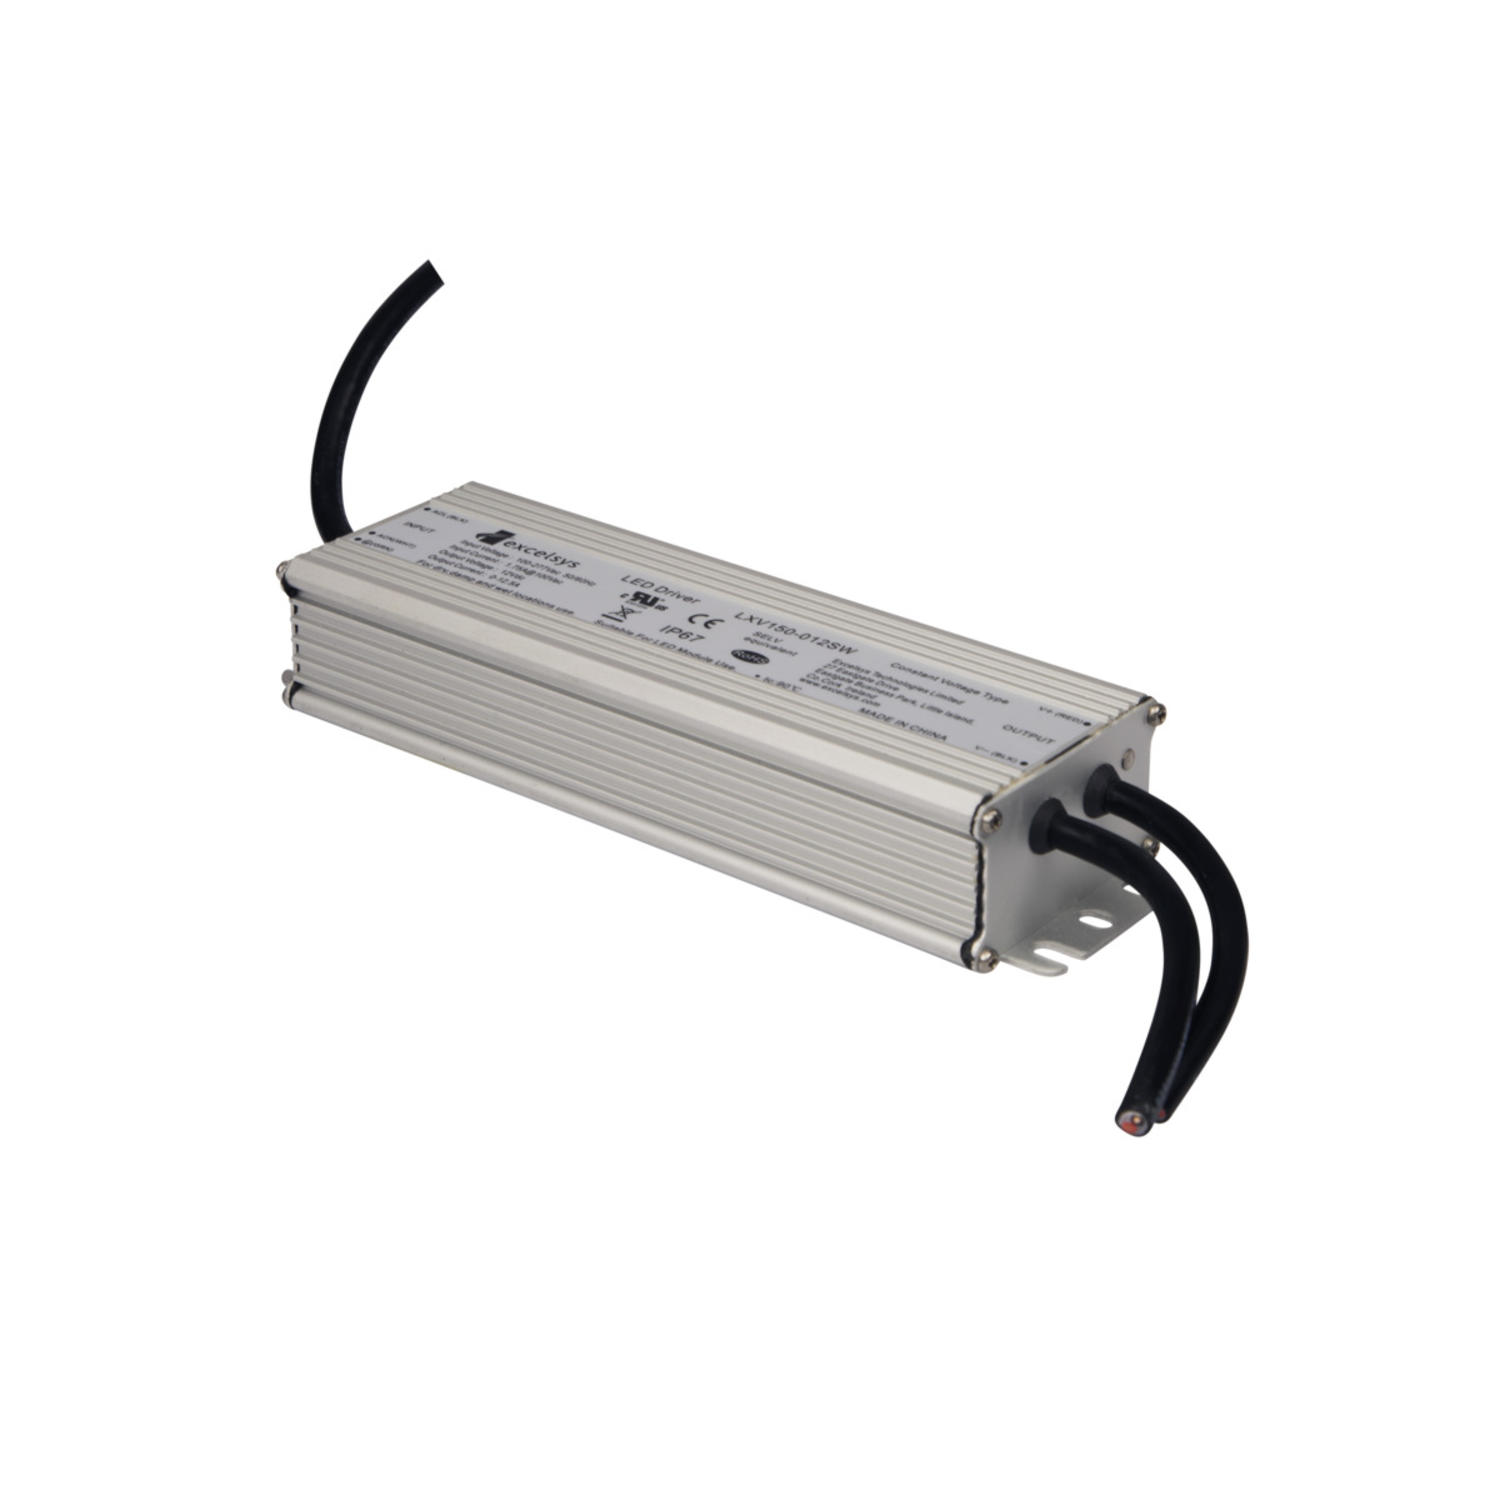 LED-trafo LXV 12VDC 150W IP67